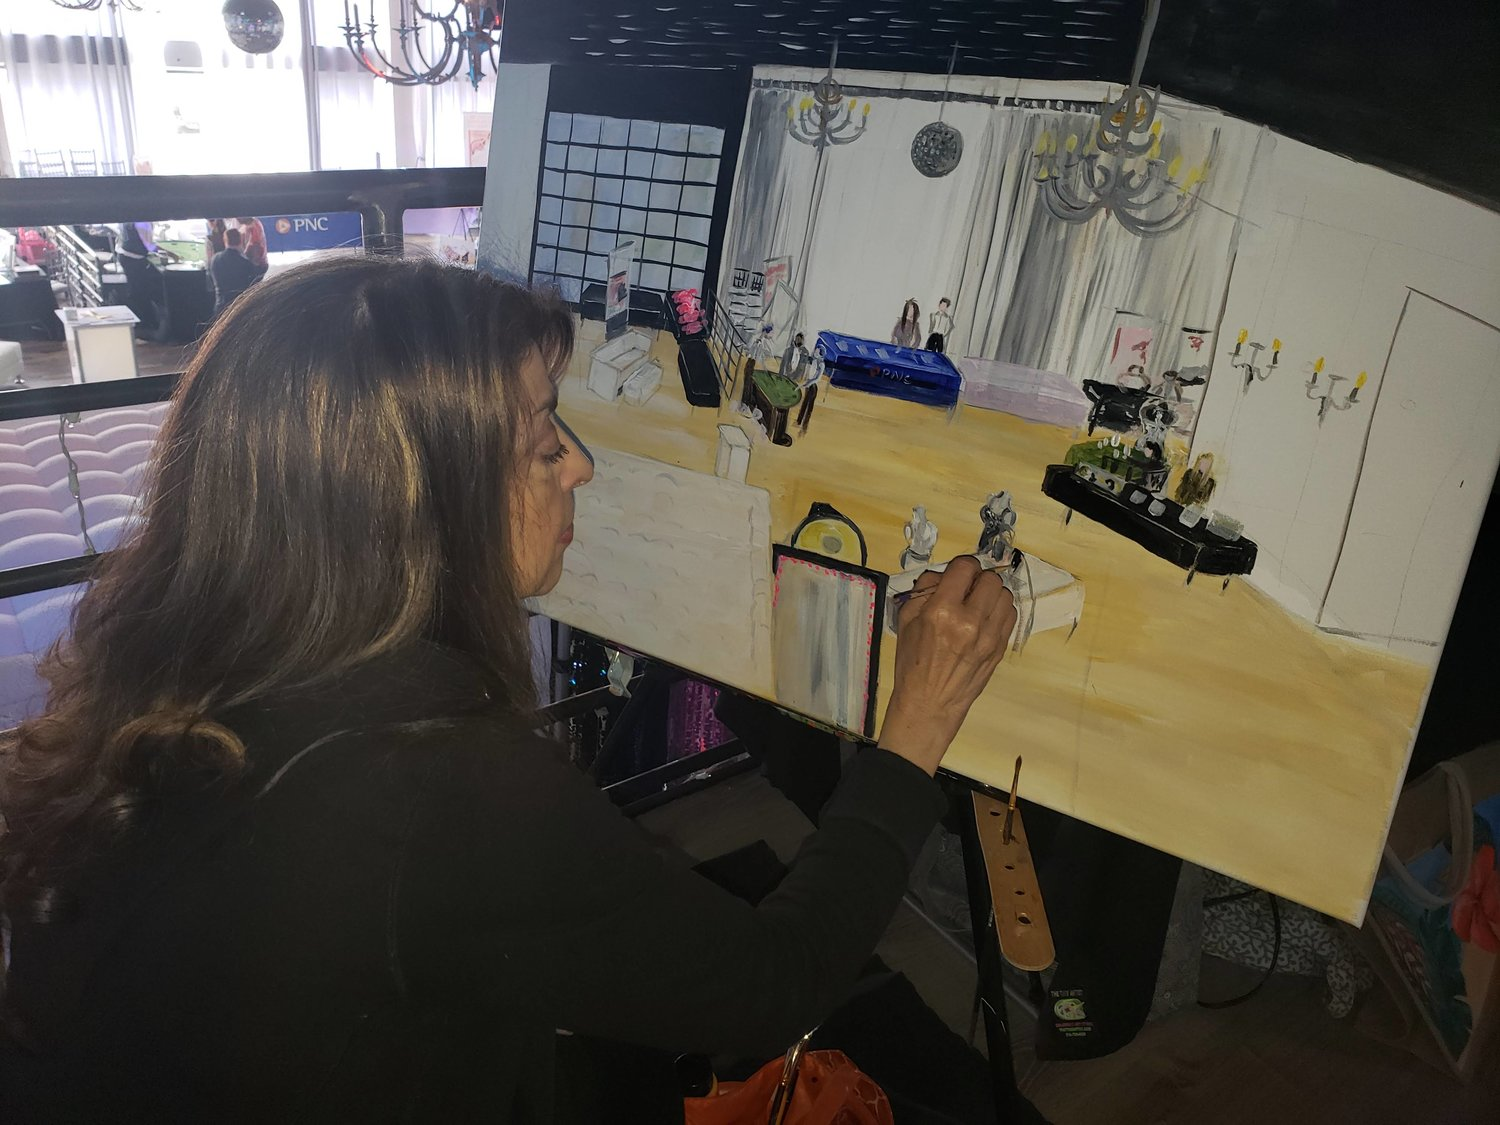 During the bridal expo, The Tiny Artist owner, Isabelle Rapacciulo painted a portrait of the event as it was happening.